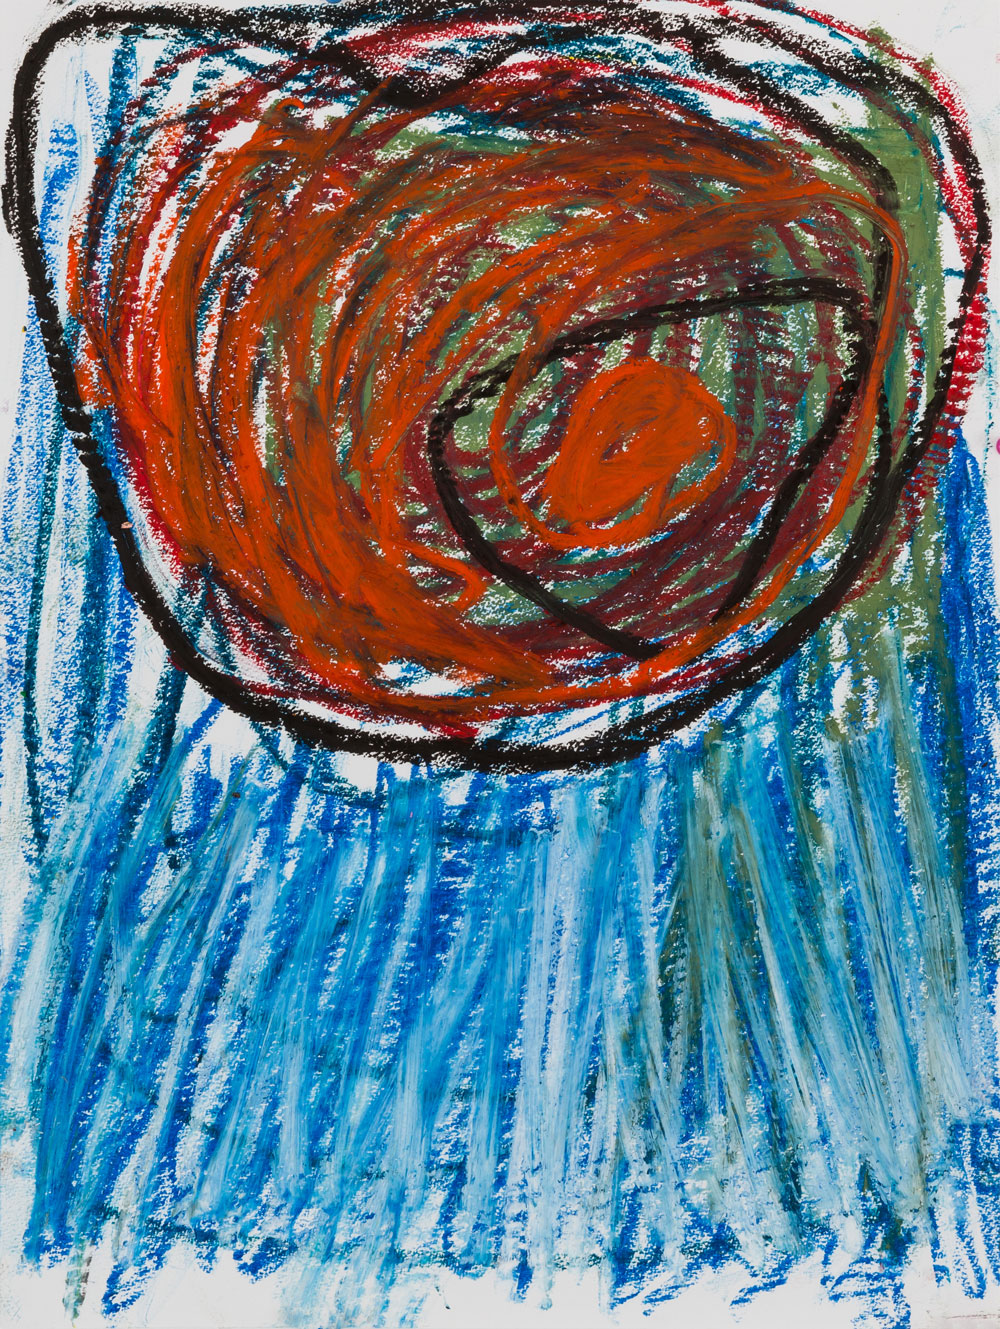 Red Circle  , oil pastel on paper, 17x14 in. ©Denise Gale 2016